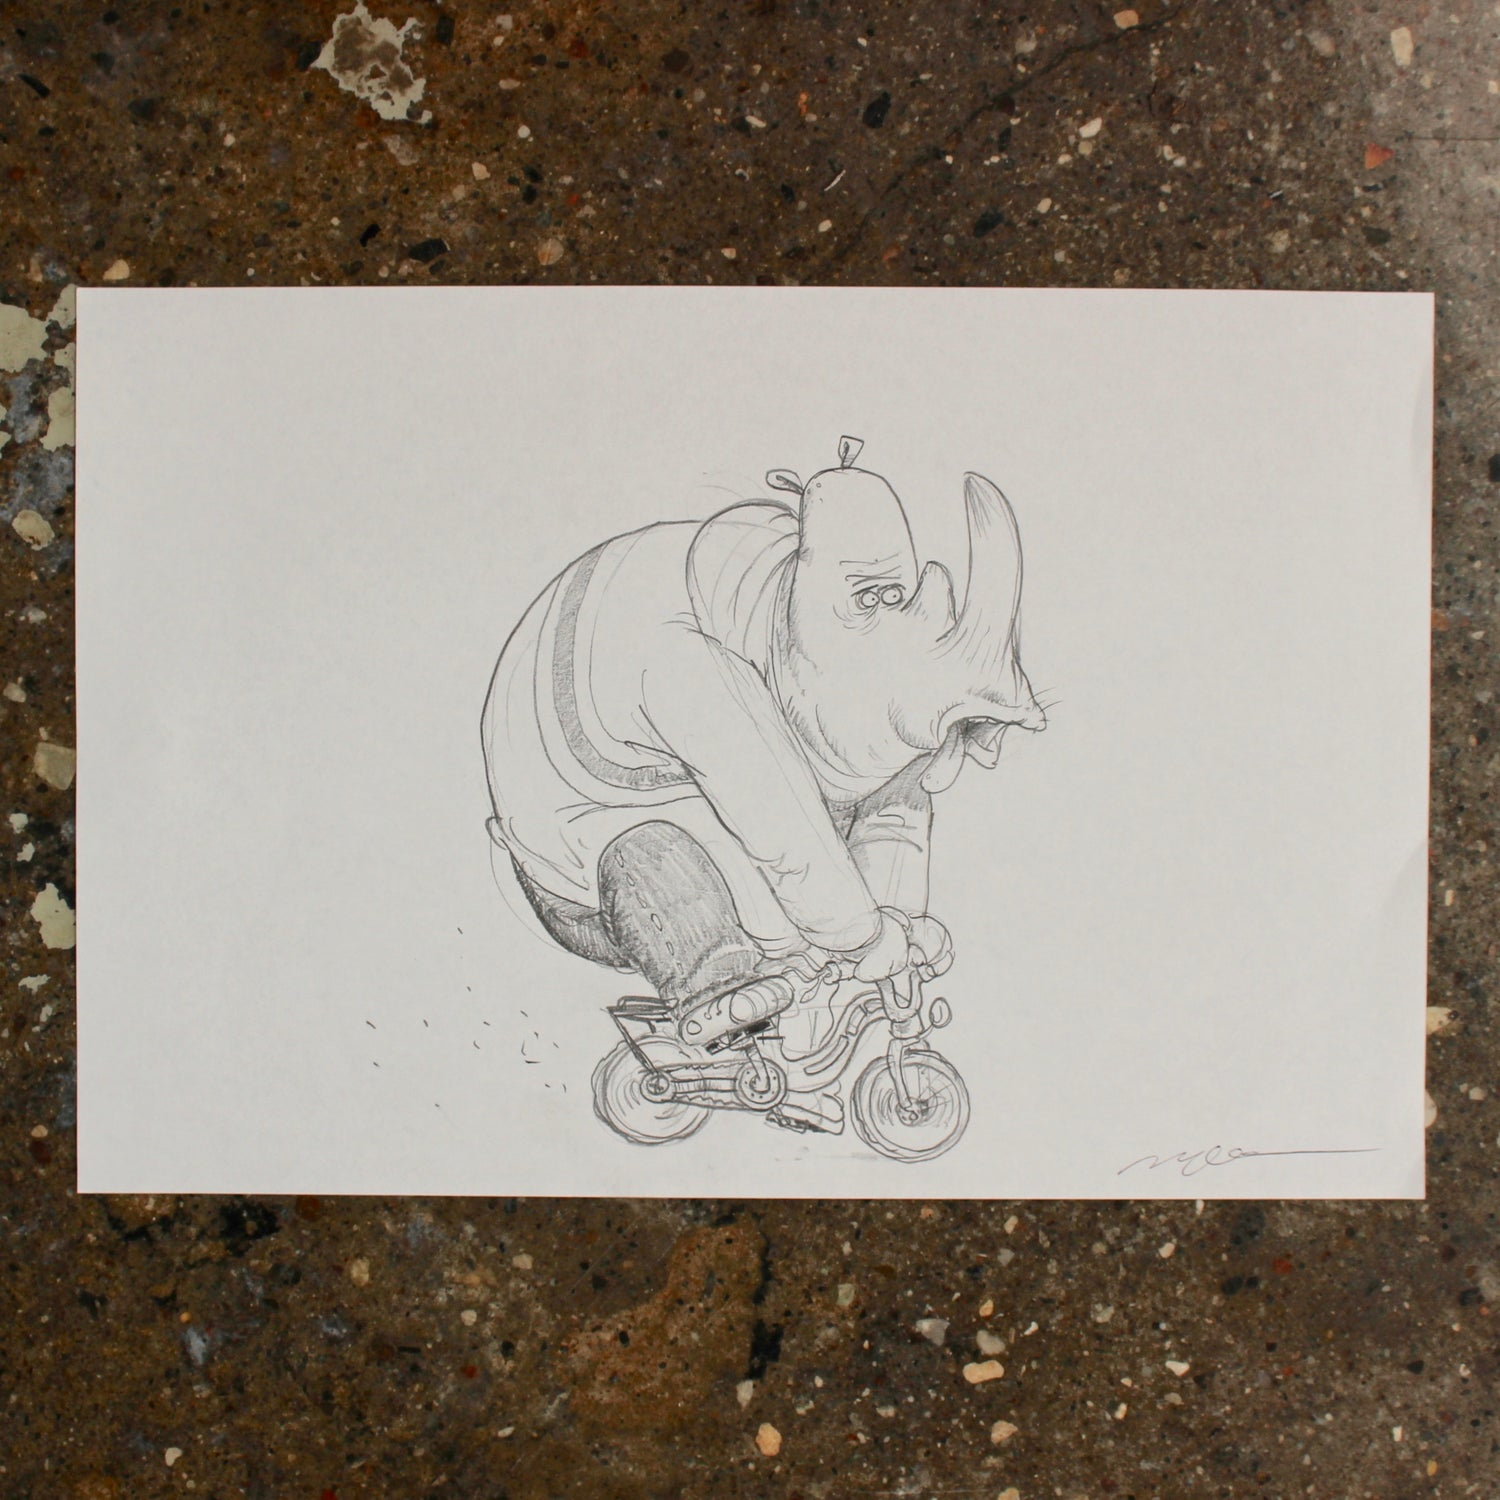 Image of Rhino on a bicycle